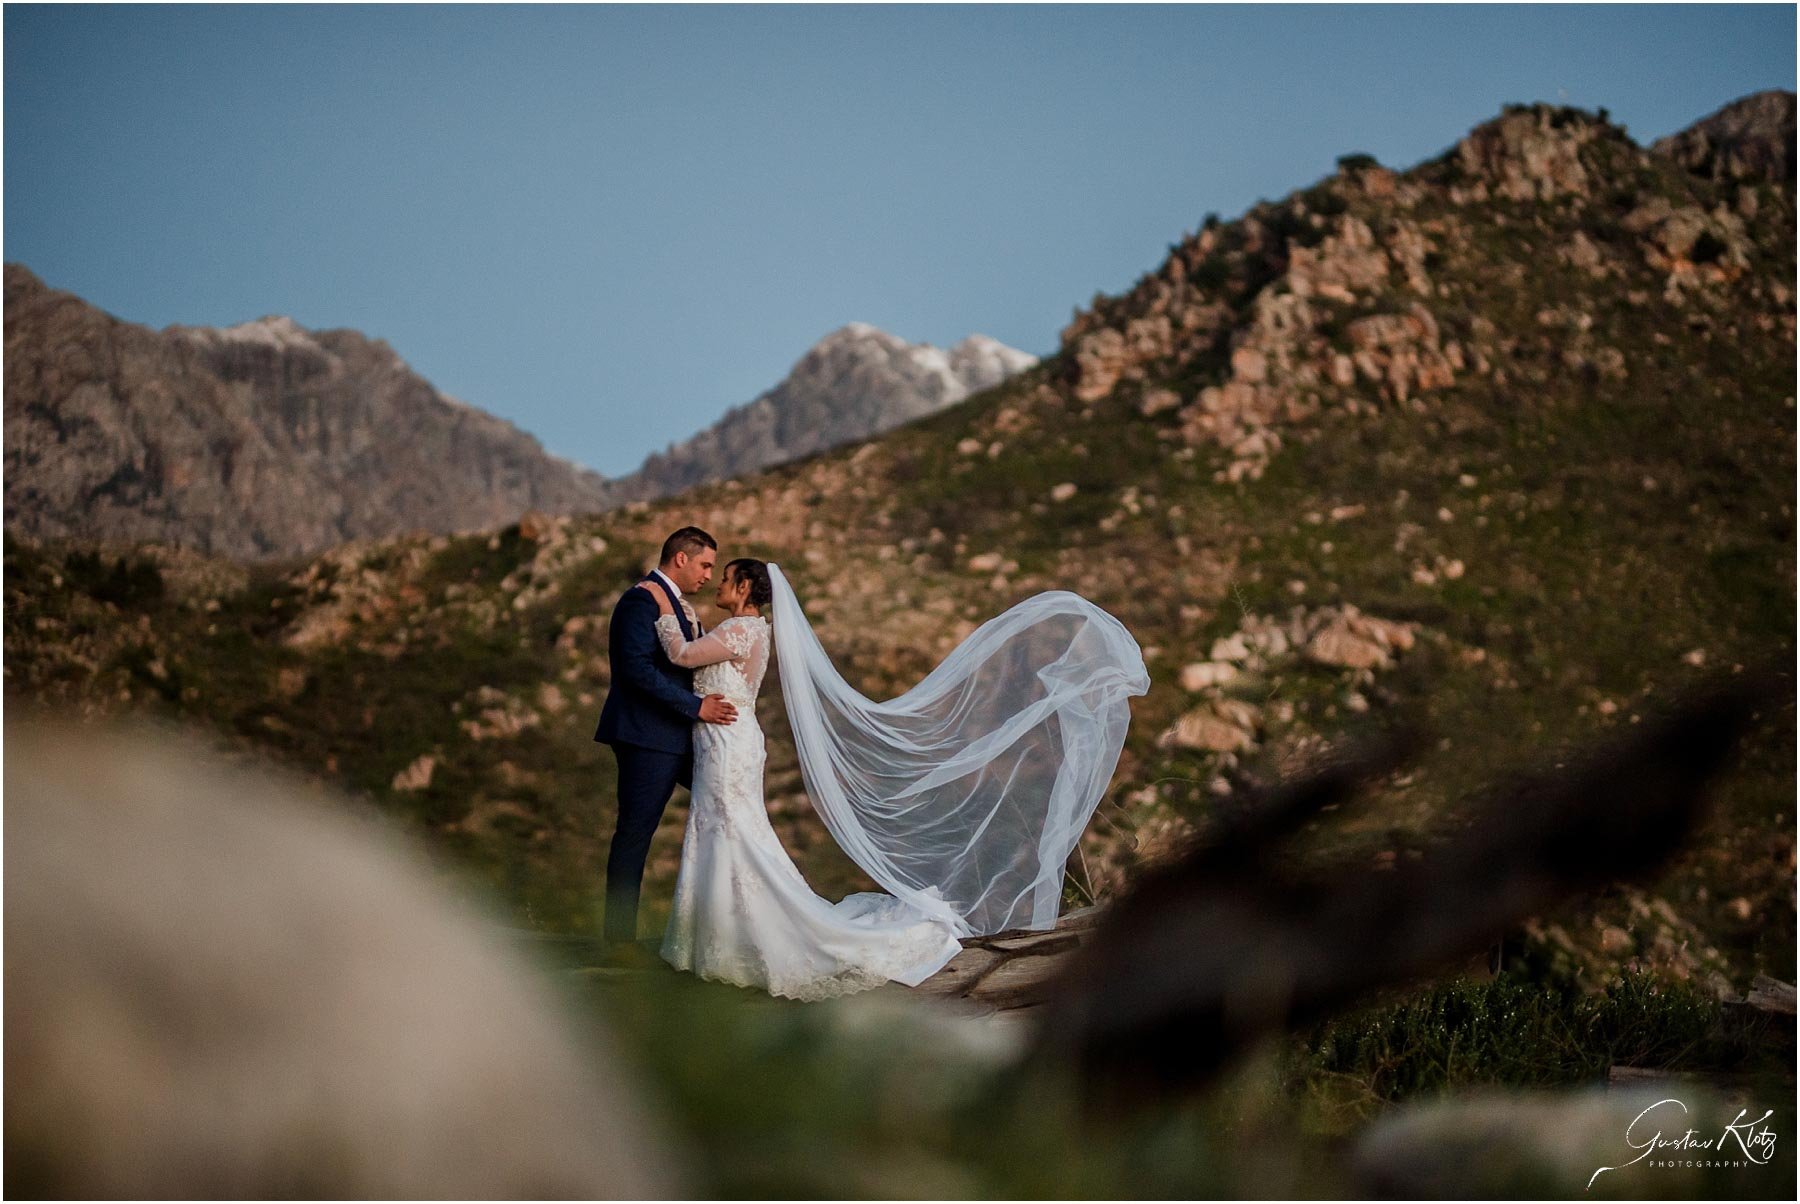 Edmund & Lorean | Olive Rock Estate